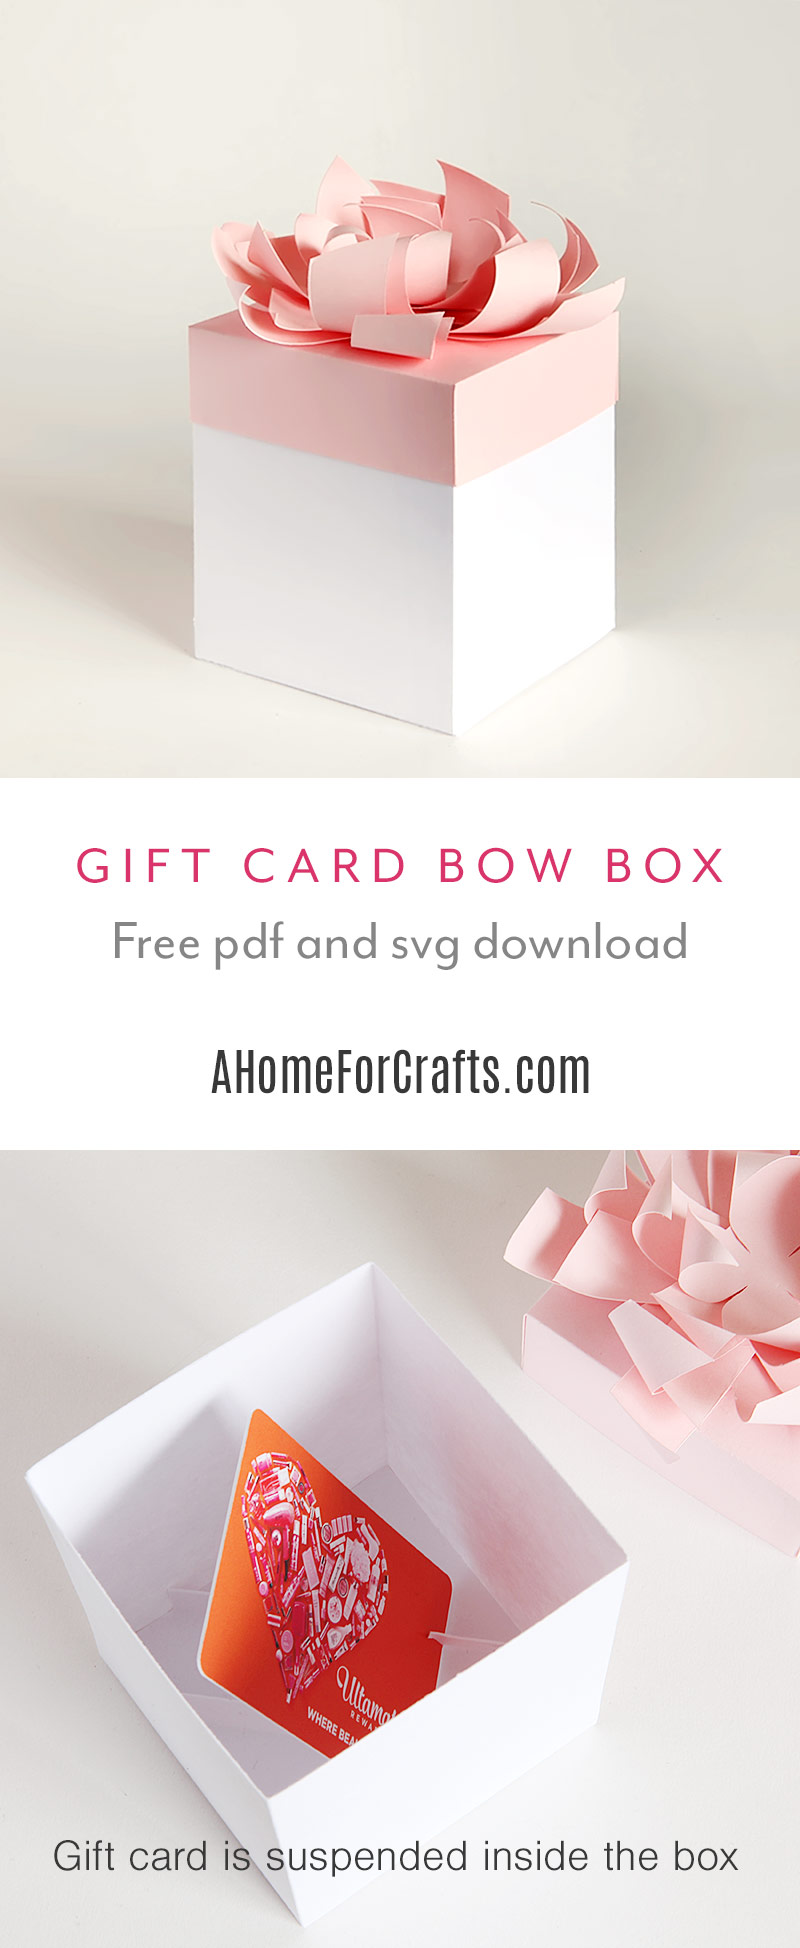 Gift card gift box with bow free svg and pdf download